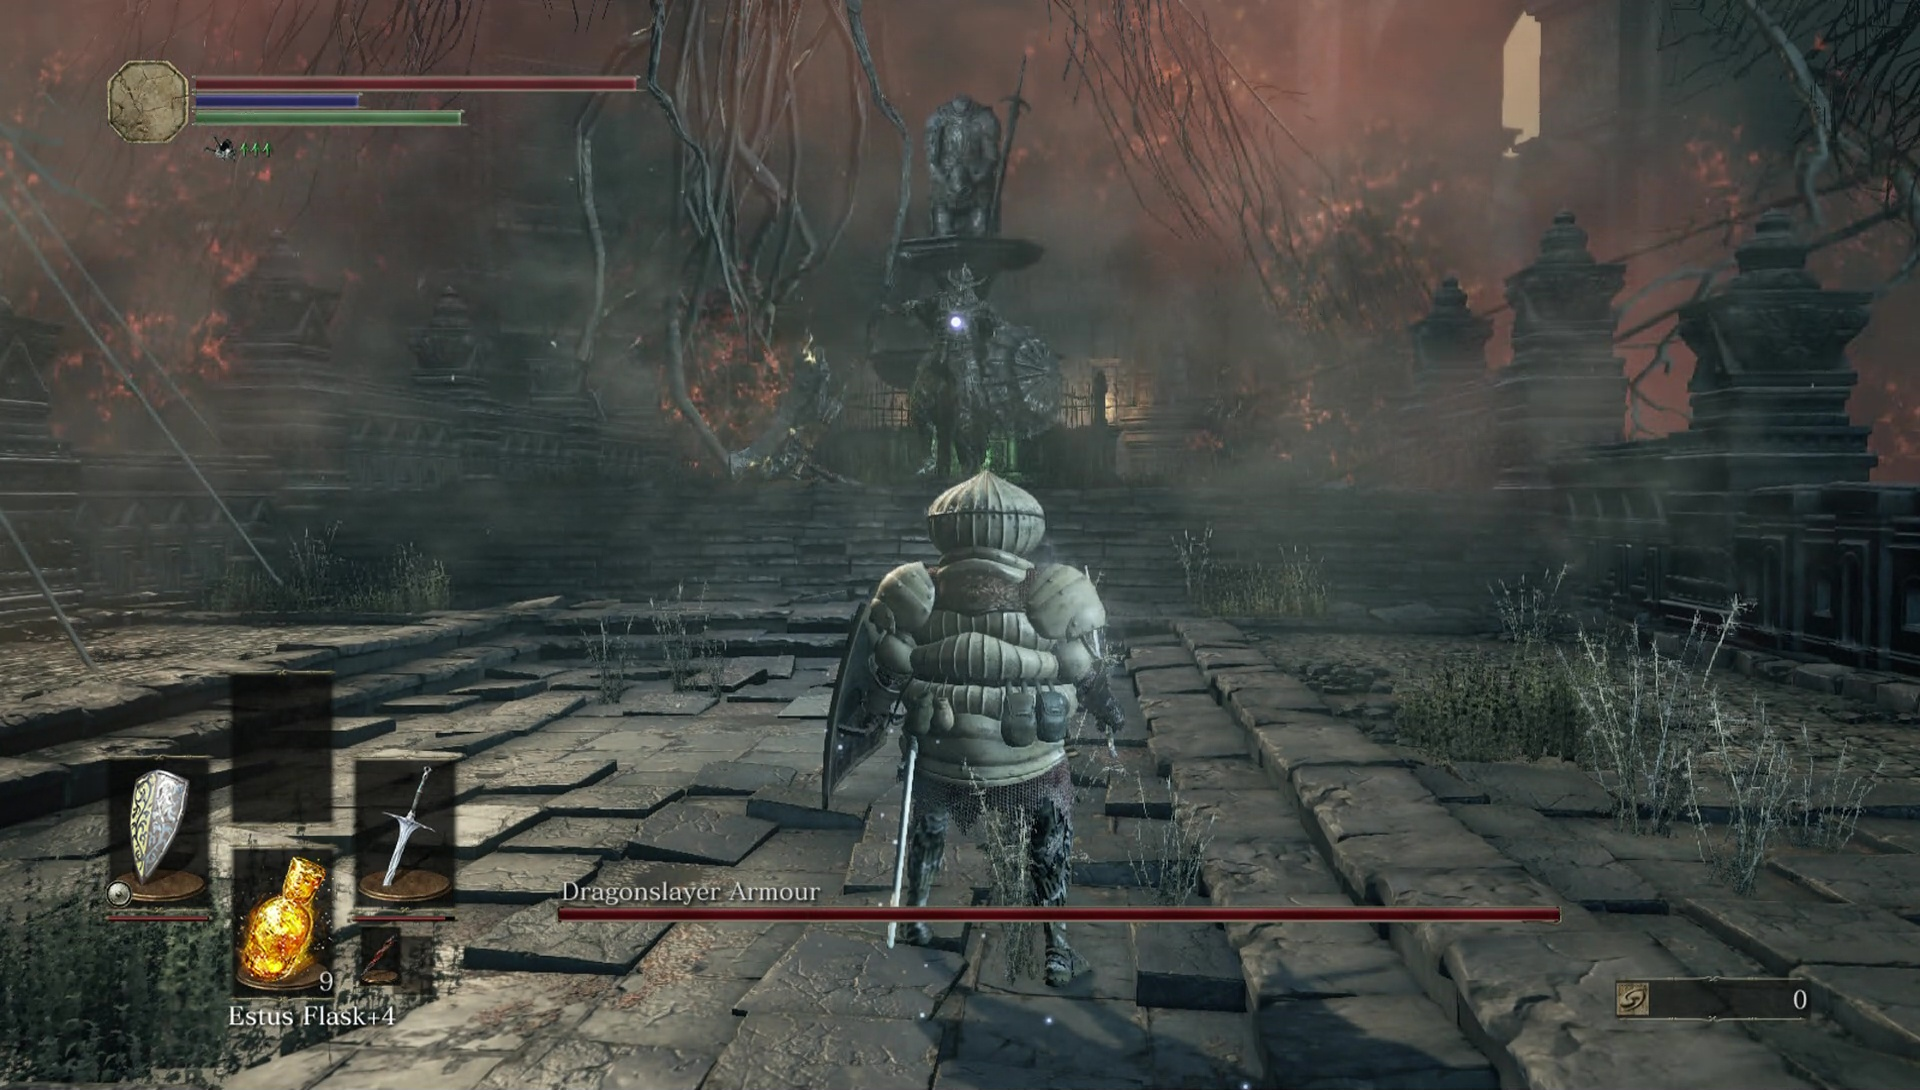 Dragonslayer Armour Boss Fight Dark Souls 3 Gosu Noob The dragonslayer armor doesn't follow the rules set by the game it'self. dragonslayer armour boss fight dark